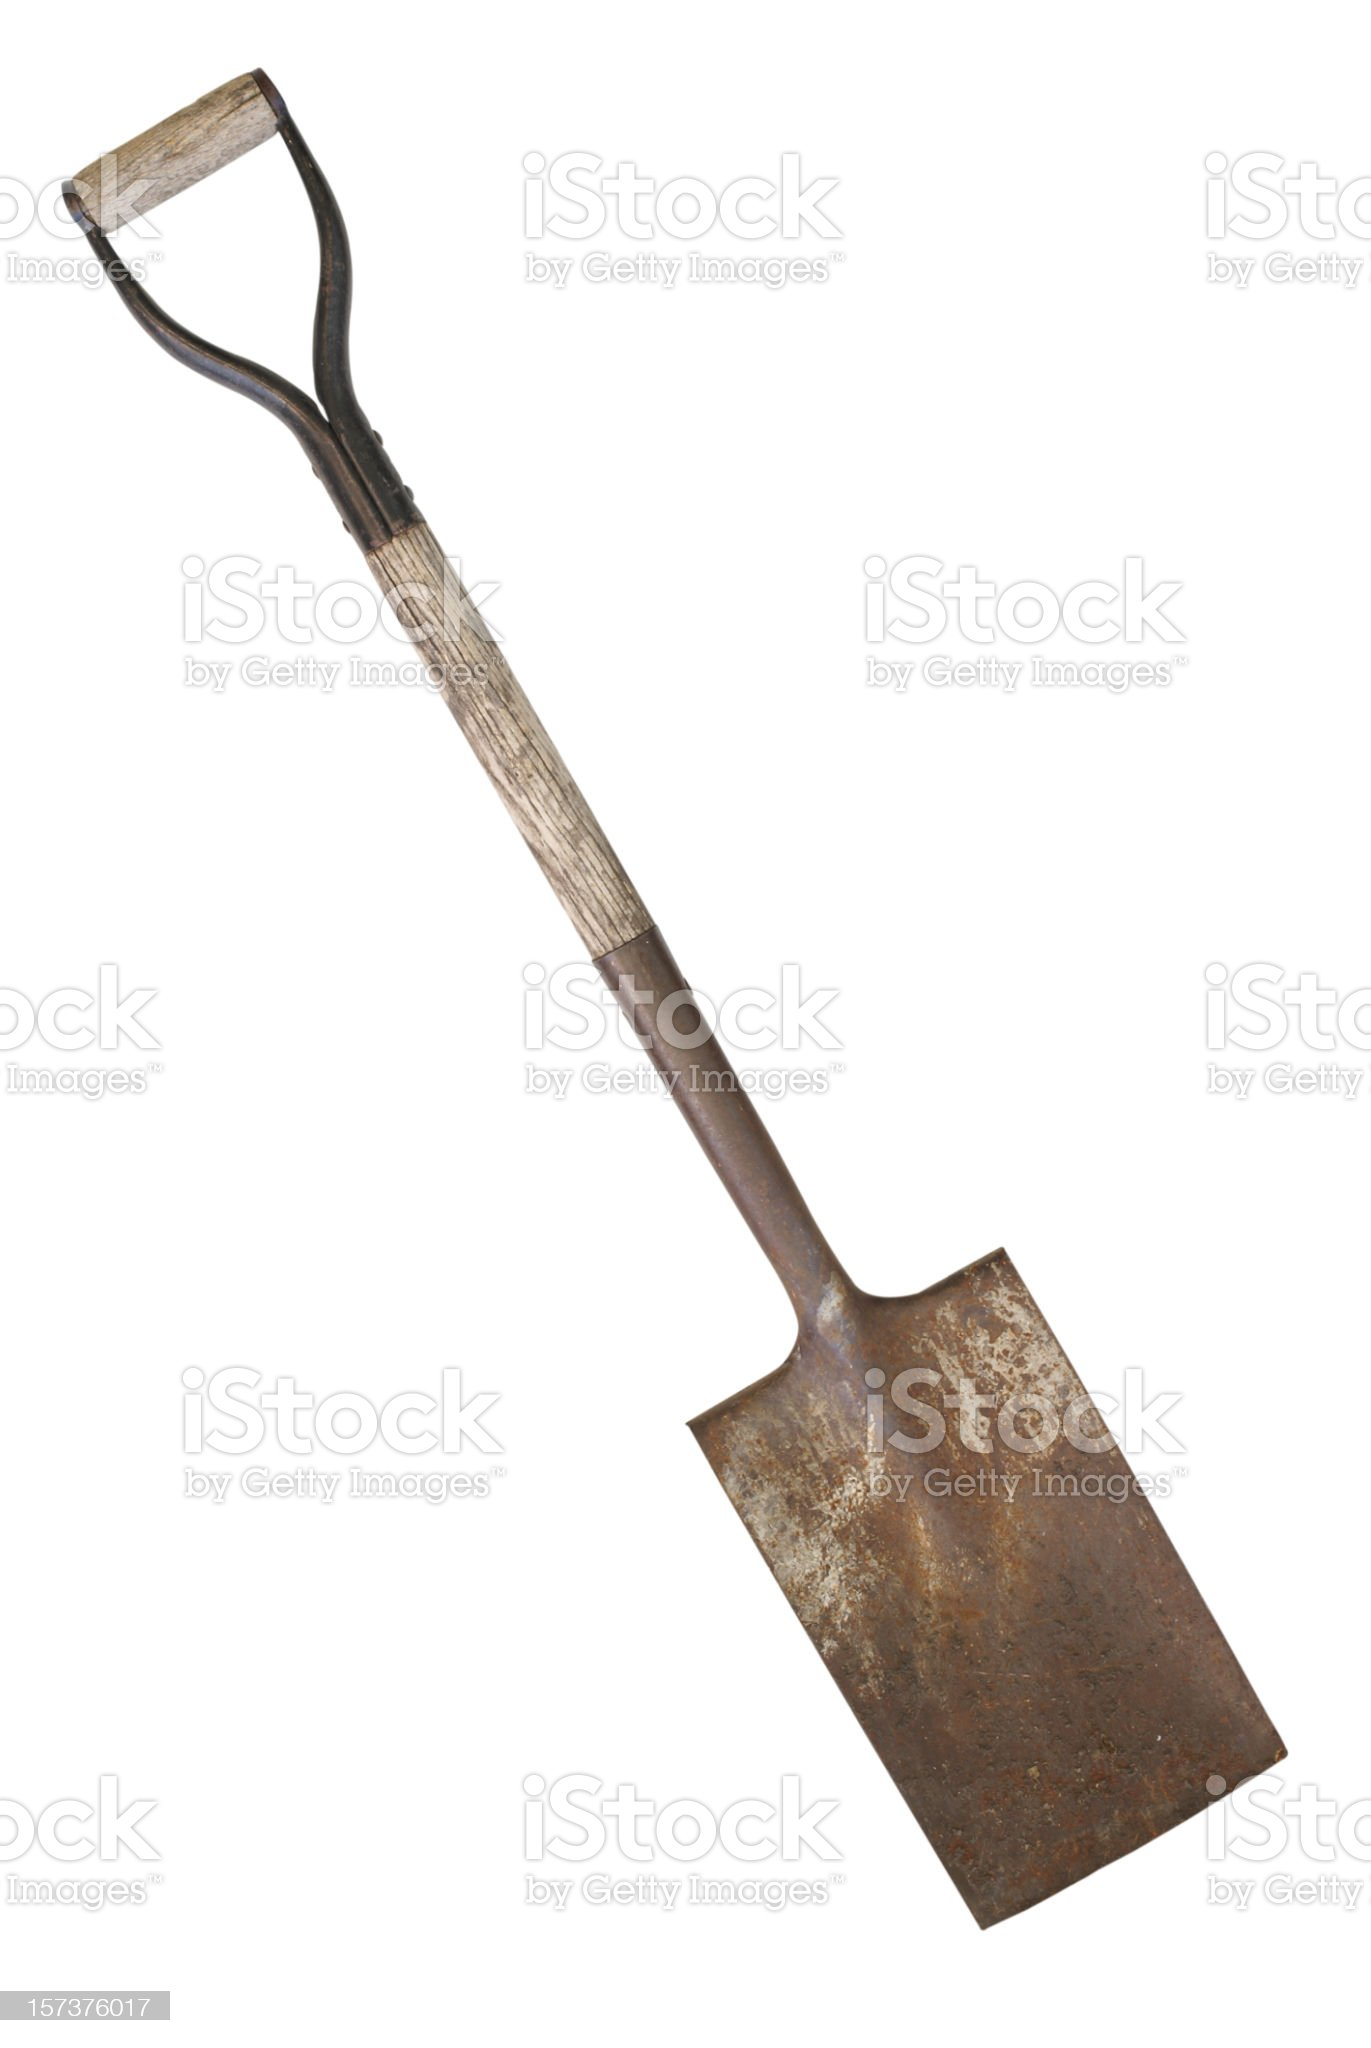 dirty,rusty, weathered spade-CLIPPING PATH royalty-free stock photo